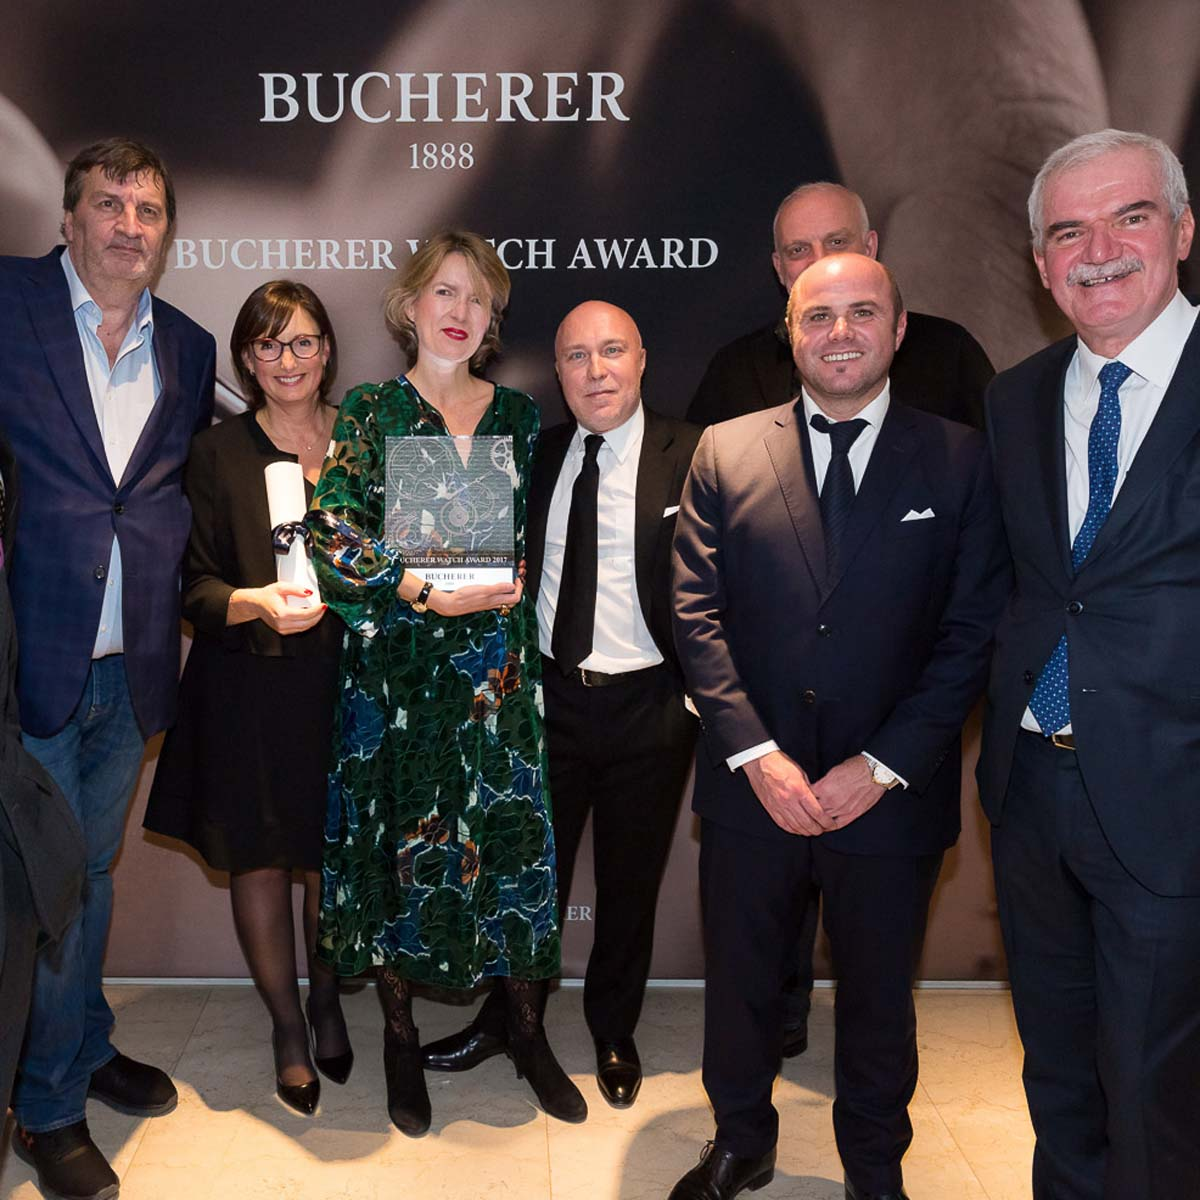 La Cote des Montres : Photo - La montre « Neo Bridges », de la Maison Girard-Perregaux, lauréate du « Bucherer Watch Award 2017 »